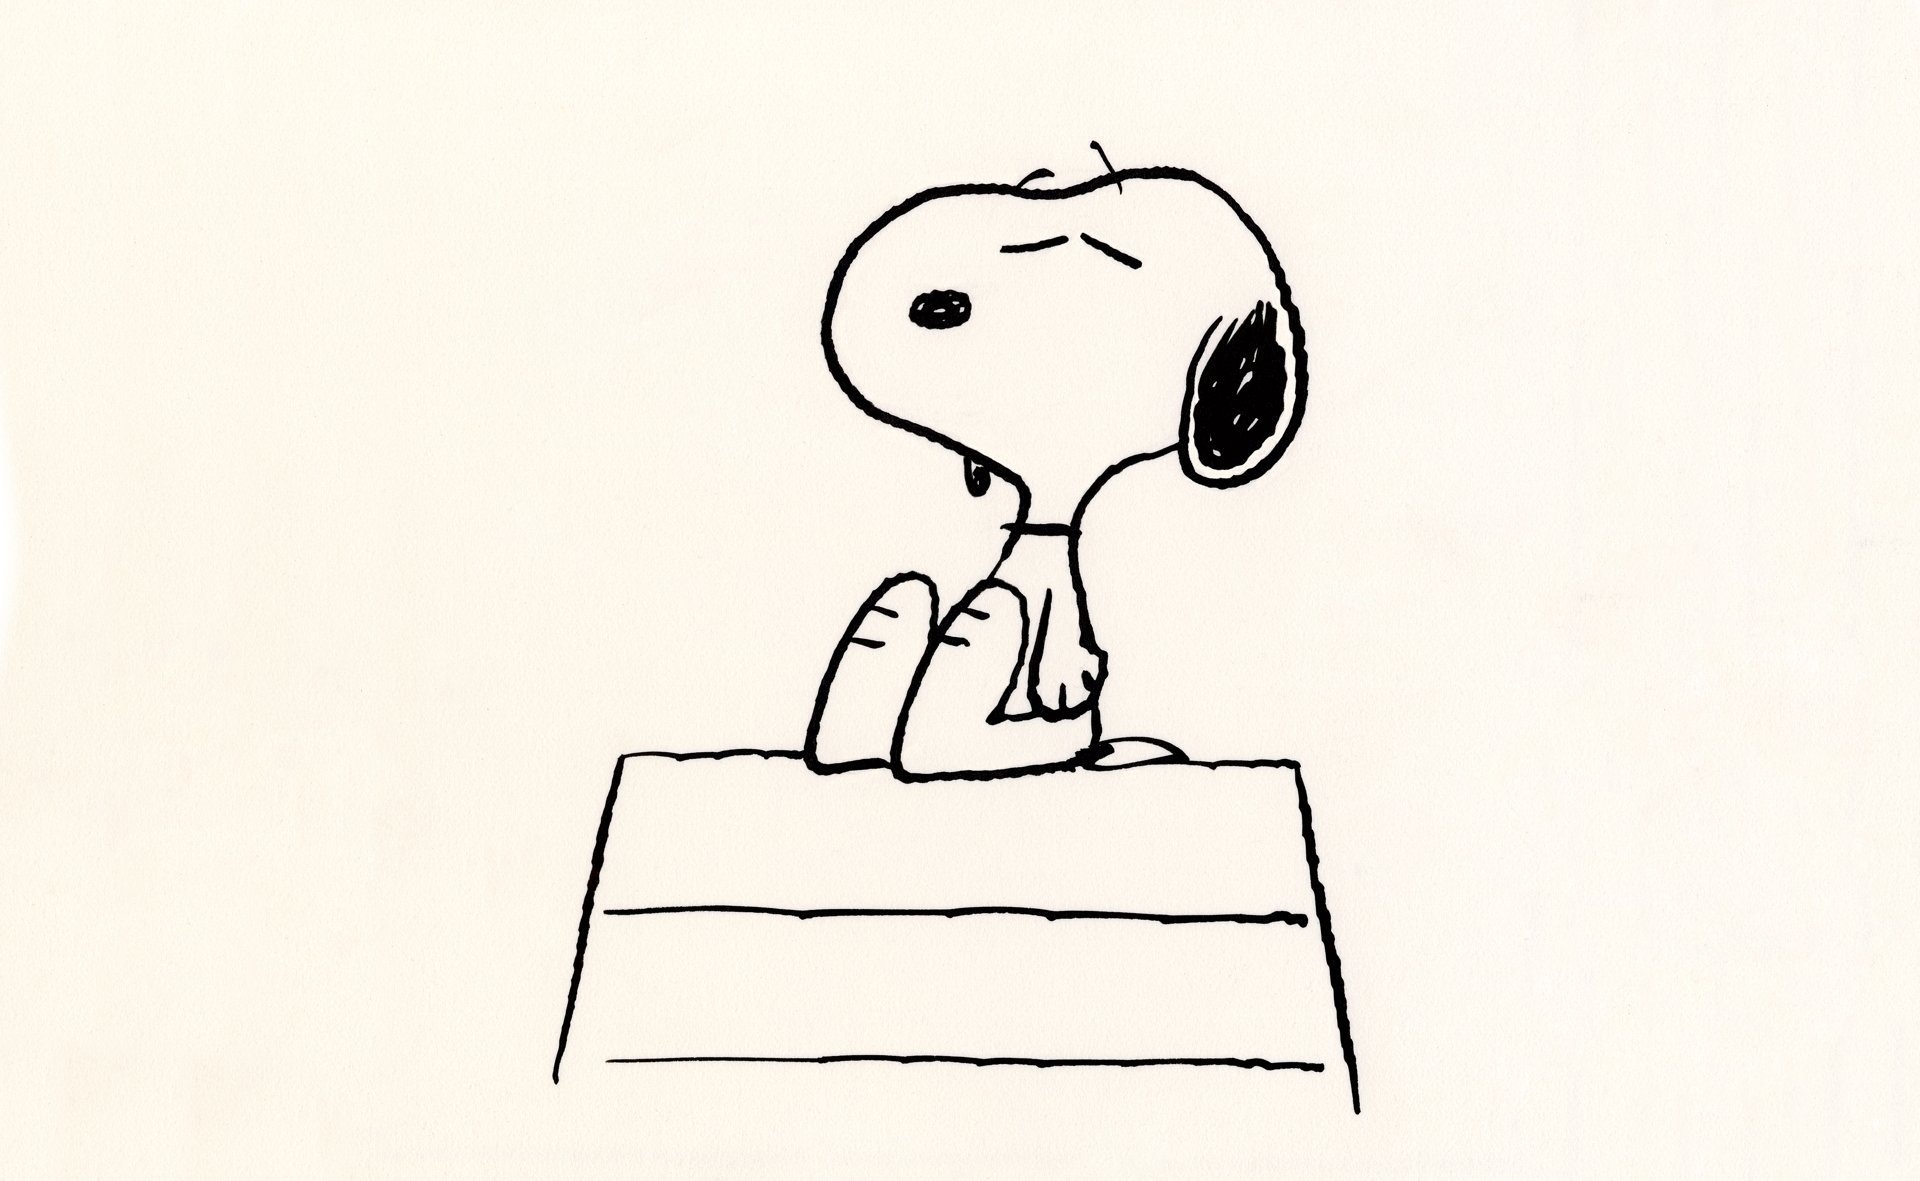 snoopy-cult-comics-strips-cult-stories-charles-schulz-cultstories-altervista-org-dog-charlie-brown-peanuts